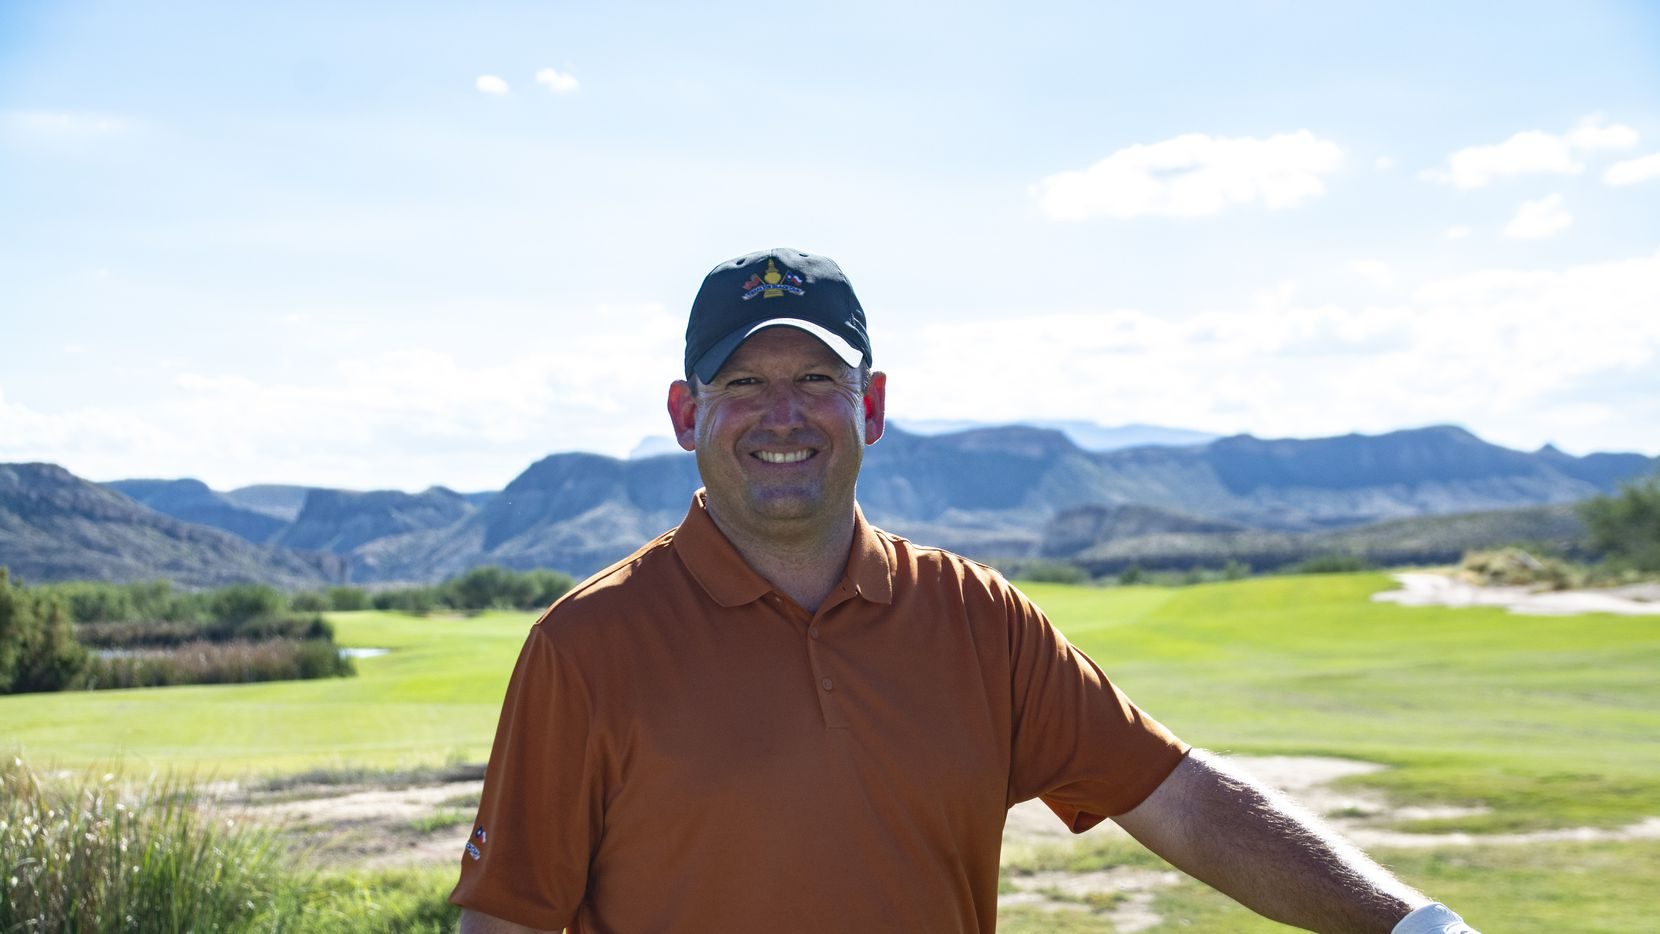 Simon Buckle was named the Northern Texas PGA Golf Professional of the Year, the section announced Tuesday, Nov. 23, 2020. Buckle is the former head pro at Brook Hollow Golf Club in Dallas.